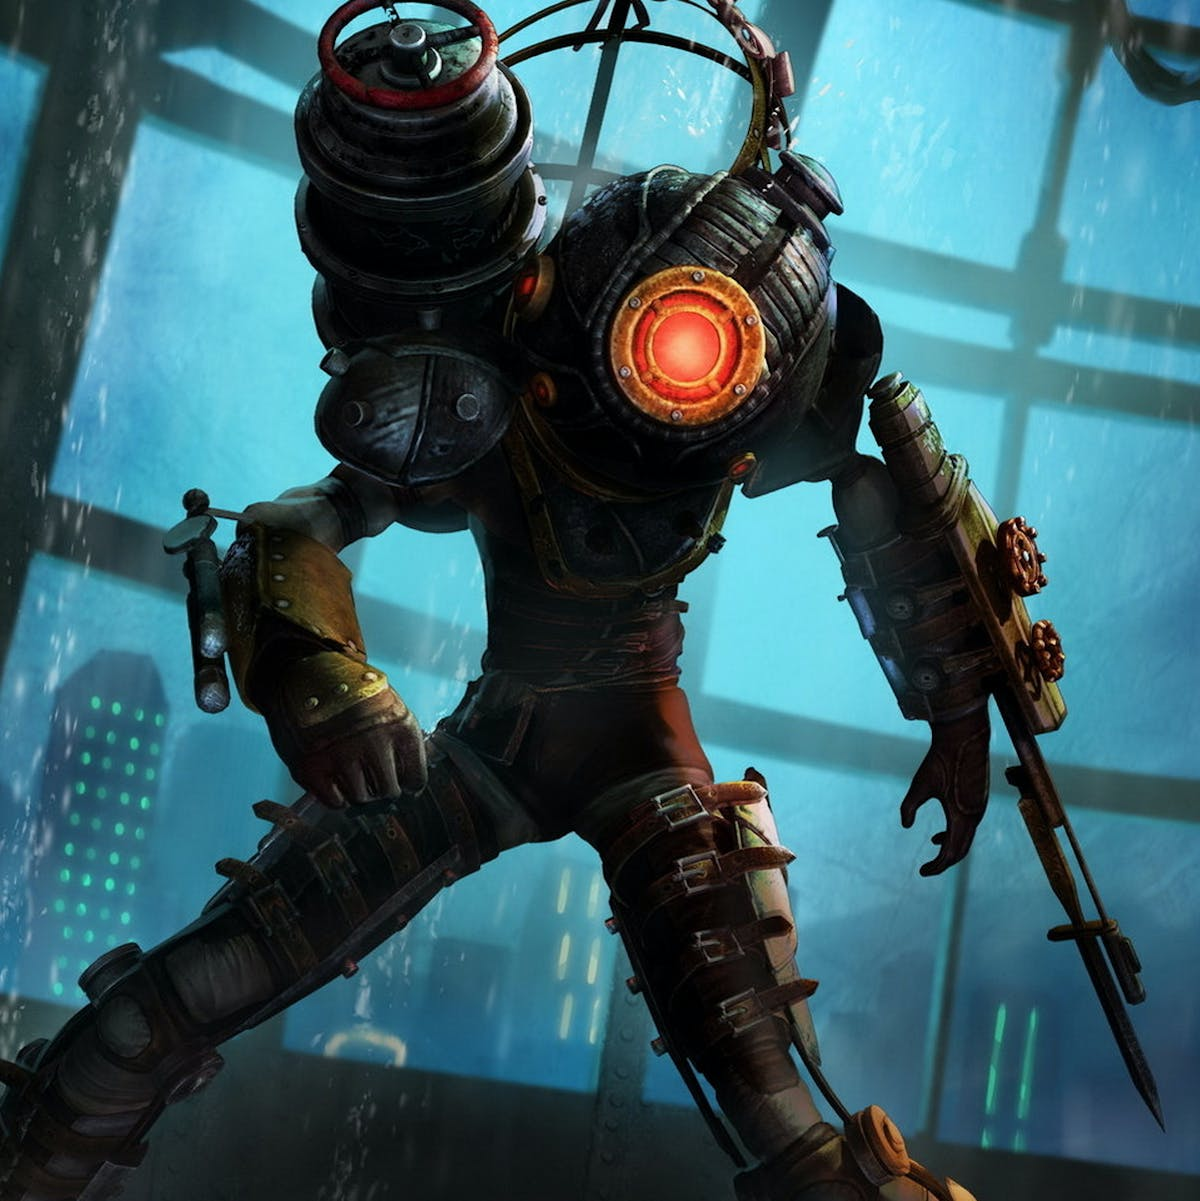 'BioShock 4' release date announcement is imminent, but fans are skeptical